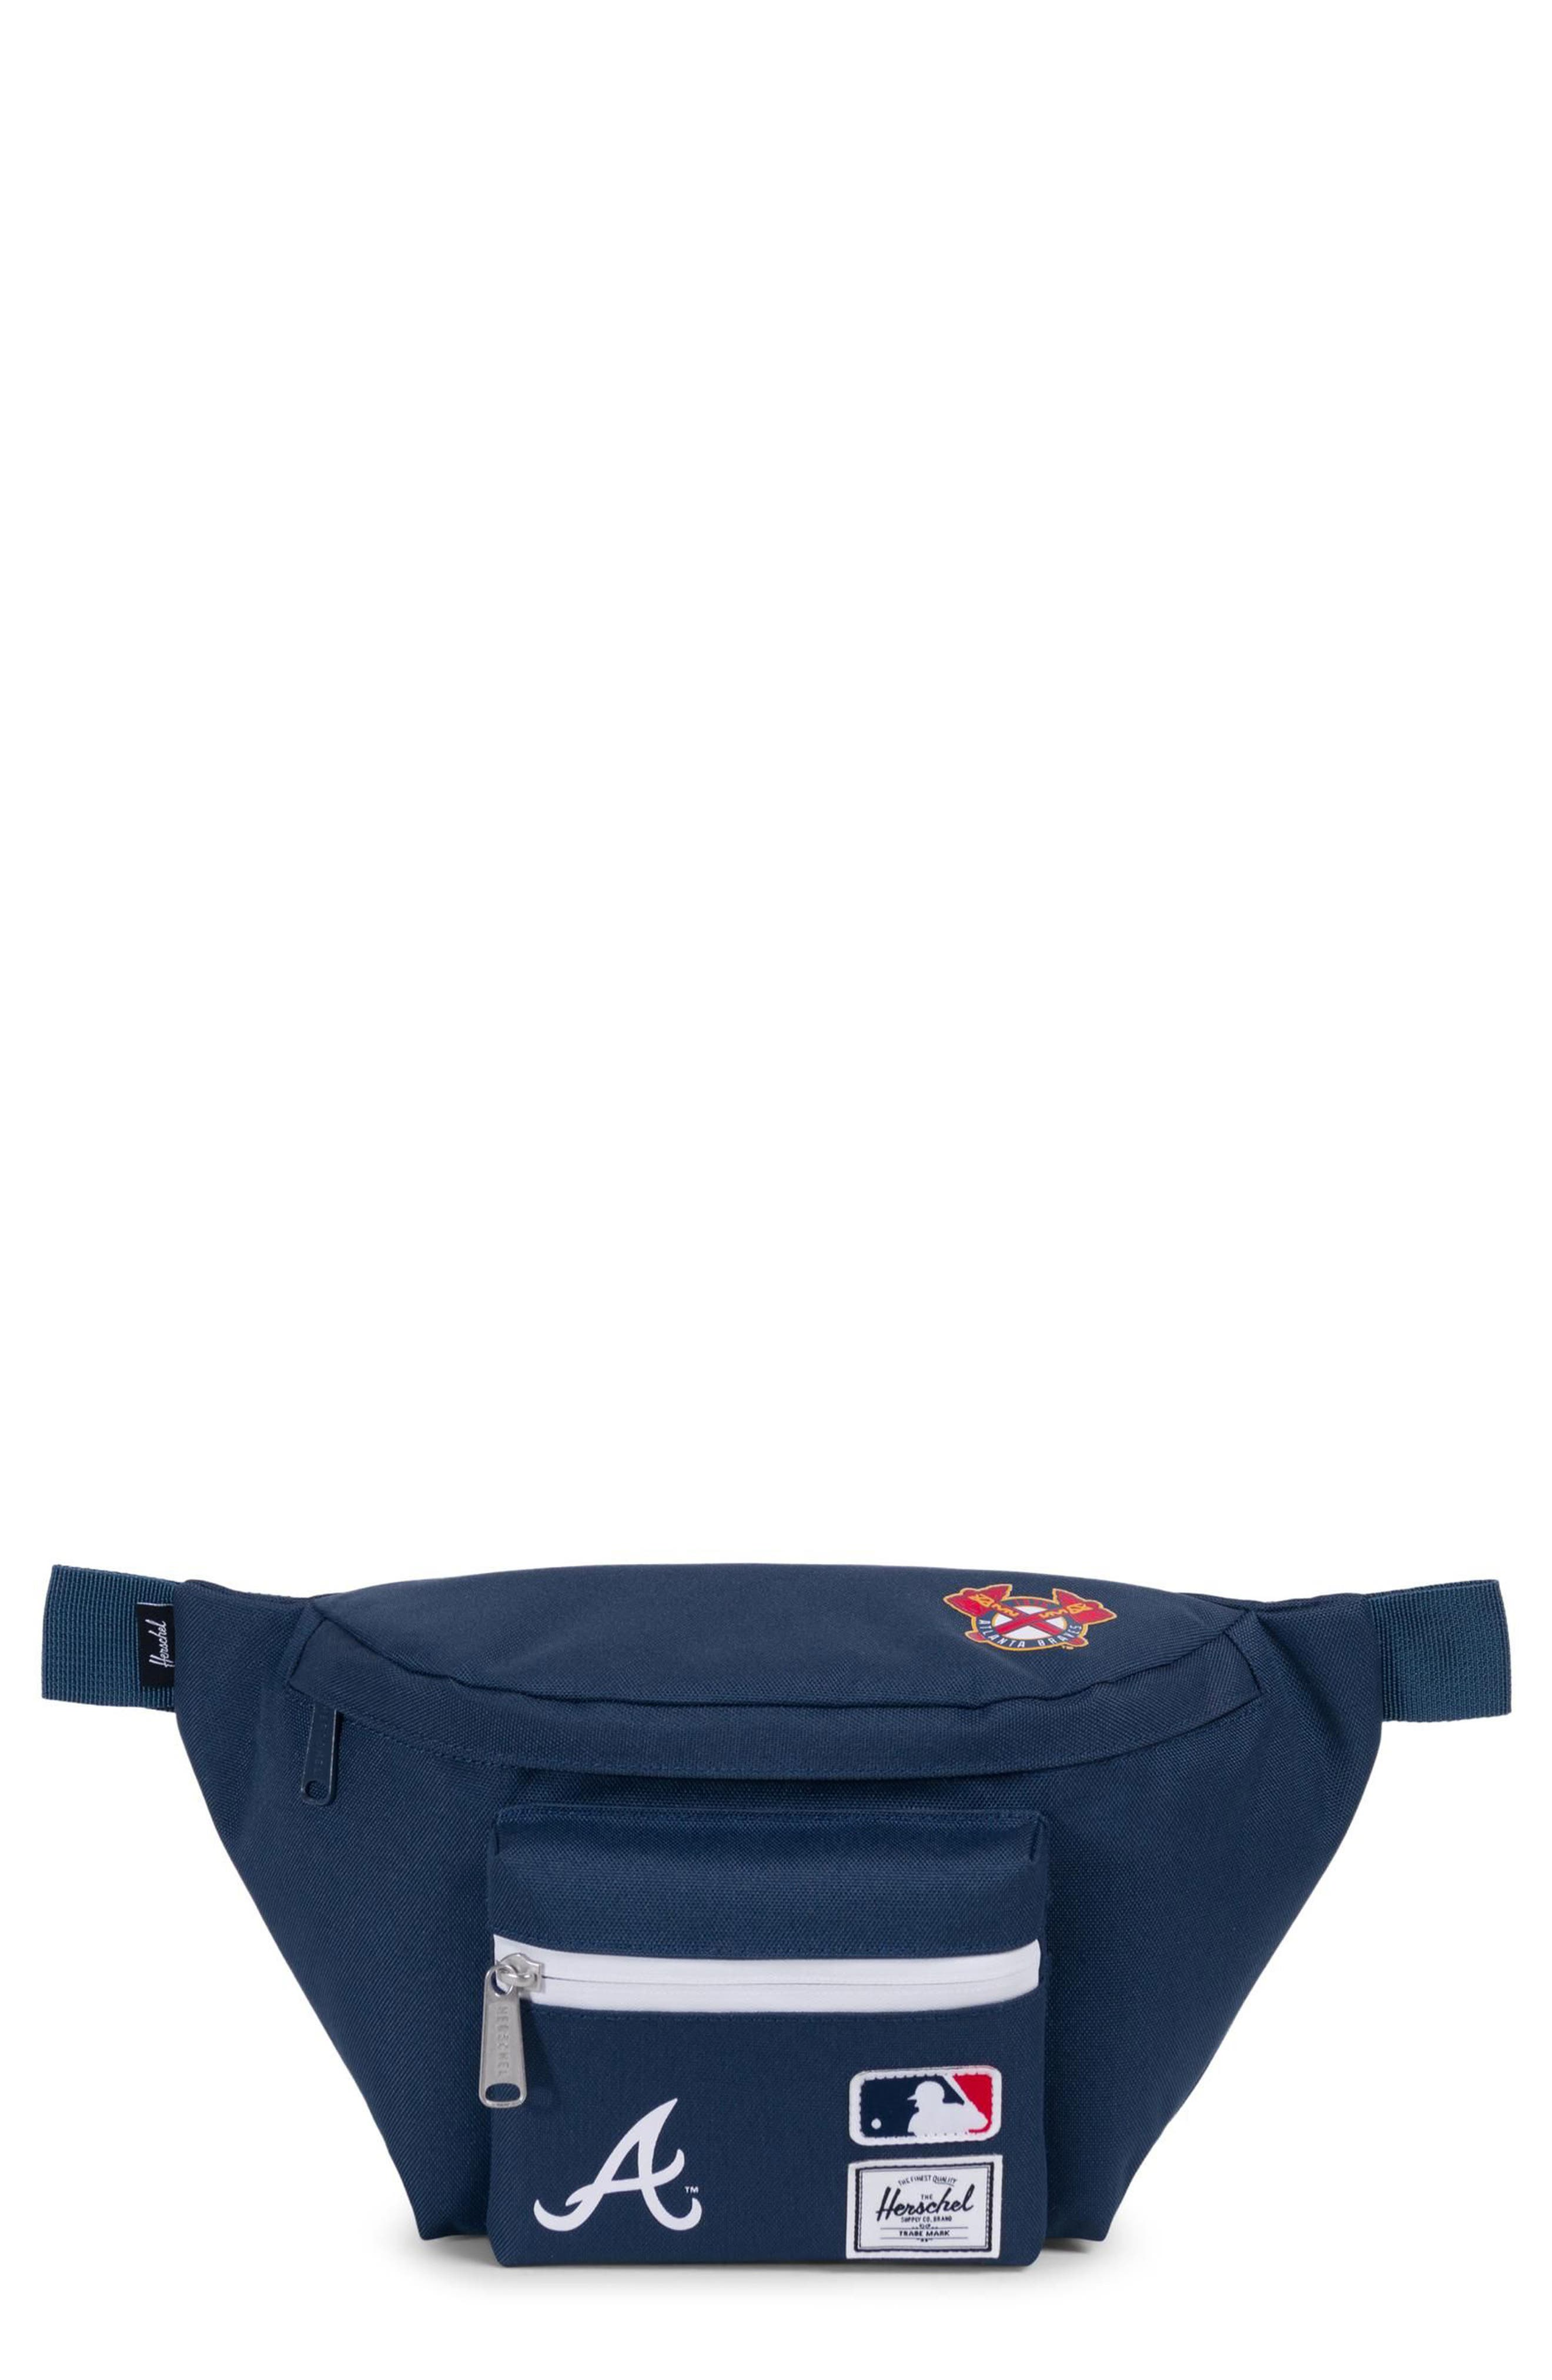 Herschel Supply Co. MLB National League Hip Pack